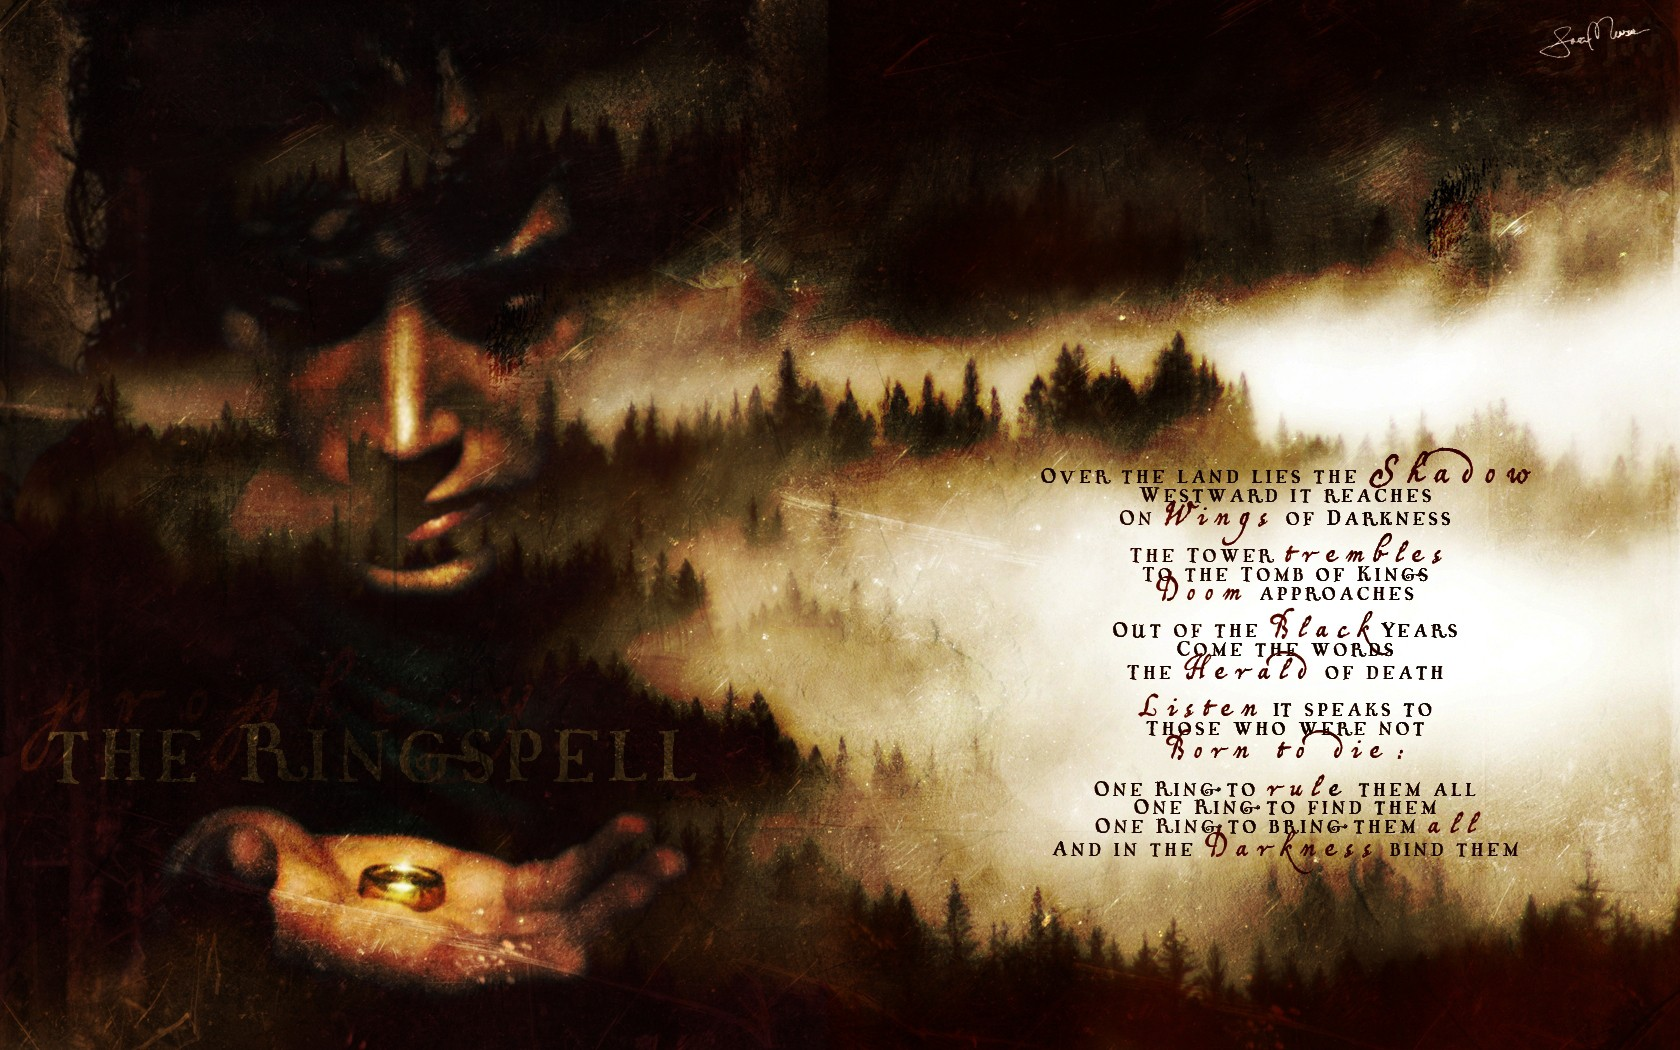 Trees Text Grunge Rings The Lord Of The Rings Artwork Poetry Frodo Baggins Wallpaper 1680x1050